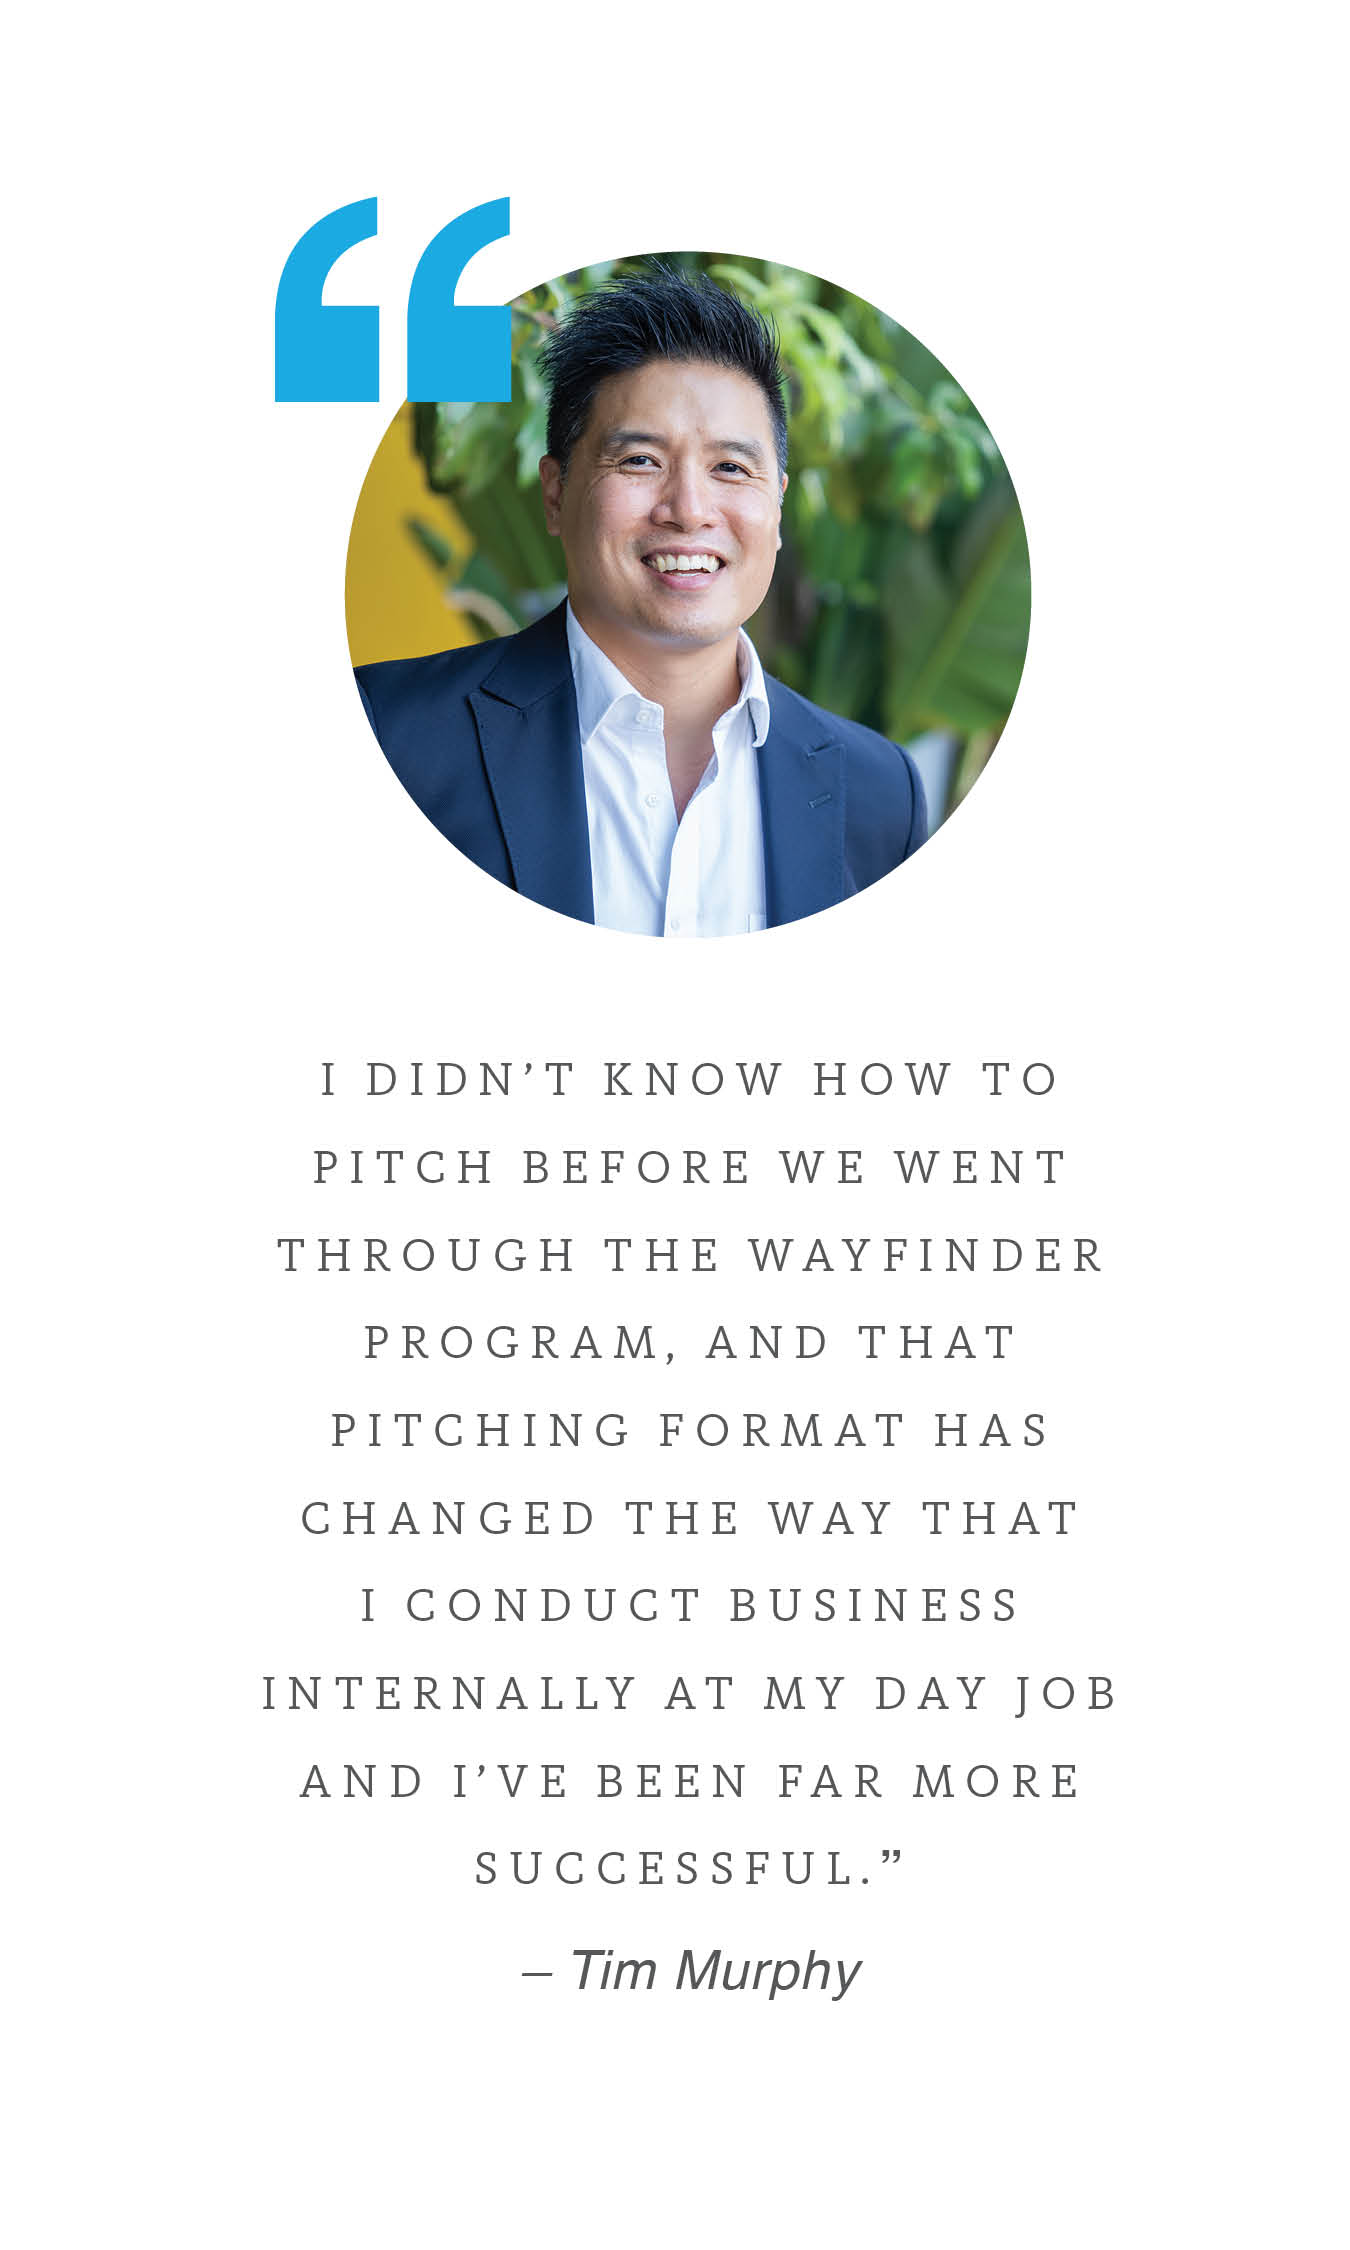 """I didn't know how to pitch before we went through the Wayfinder program, and that pitching format has changed the way that I conduct business internally at my day job and I've been far more successful."" – Tim Murphy, co-founder of Brevvie"